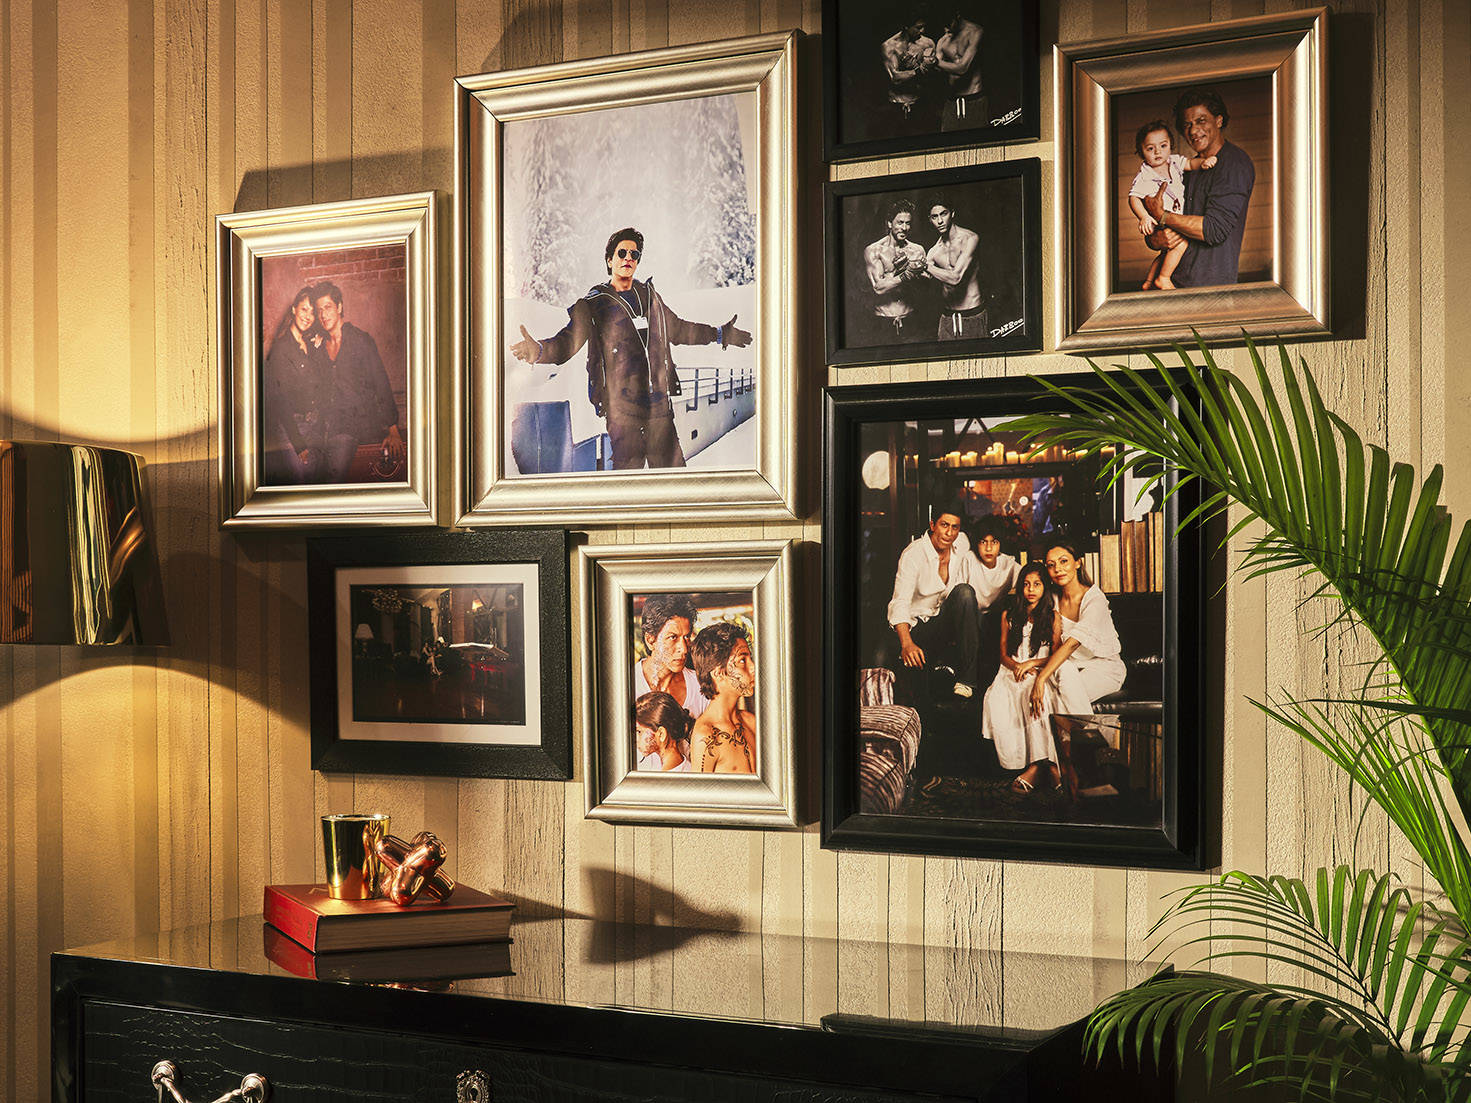 Now you can stay in Gauri Khan and Shah Rukh Khan's house in Delhi